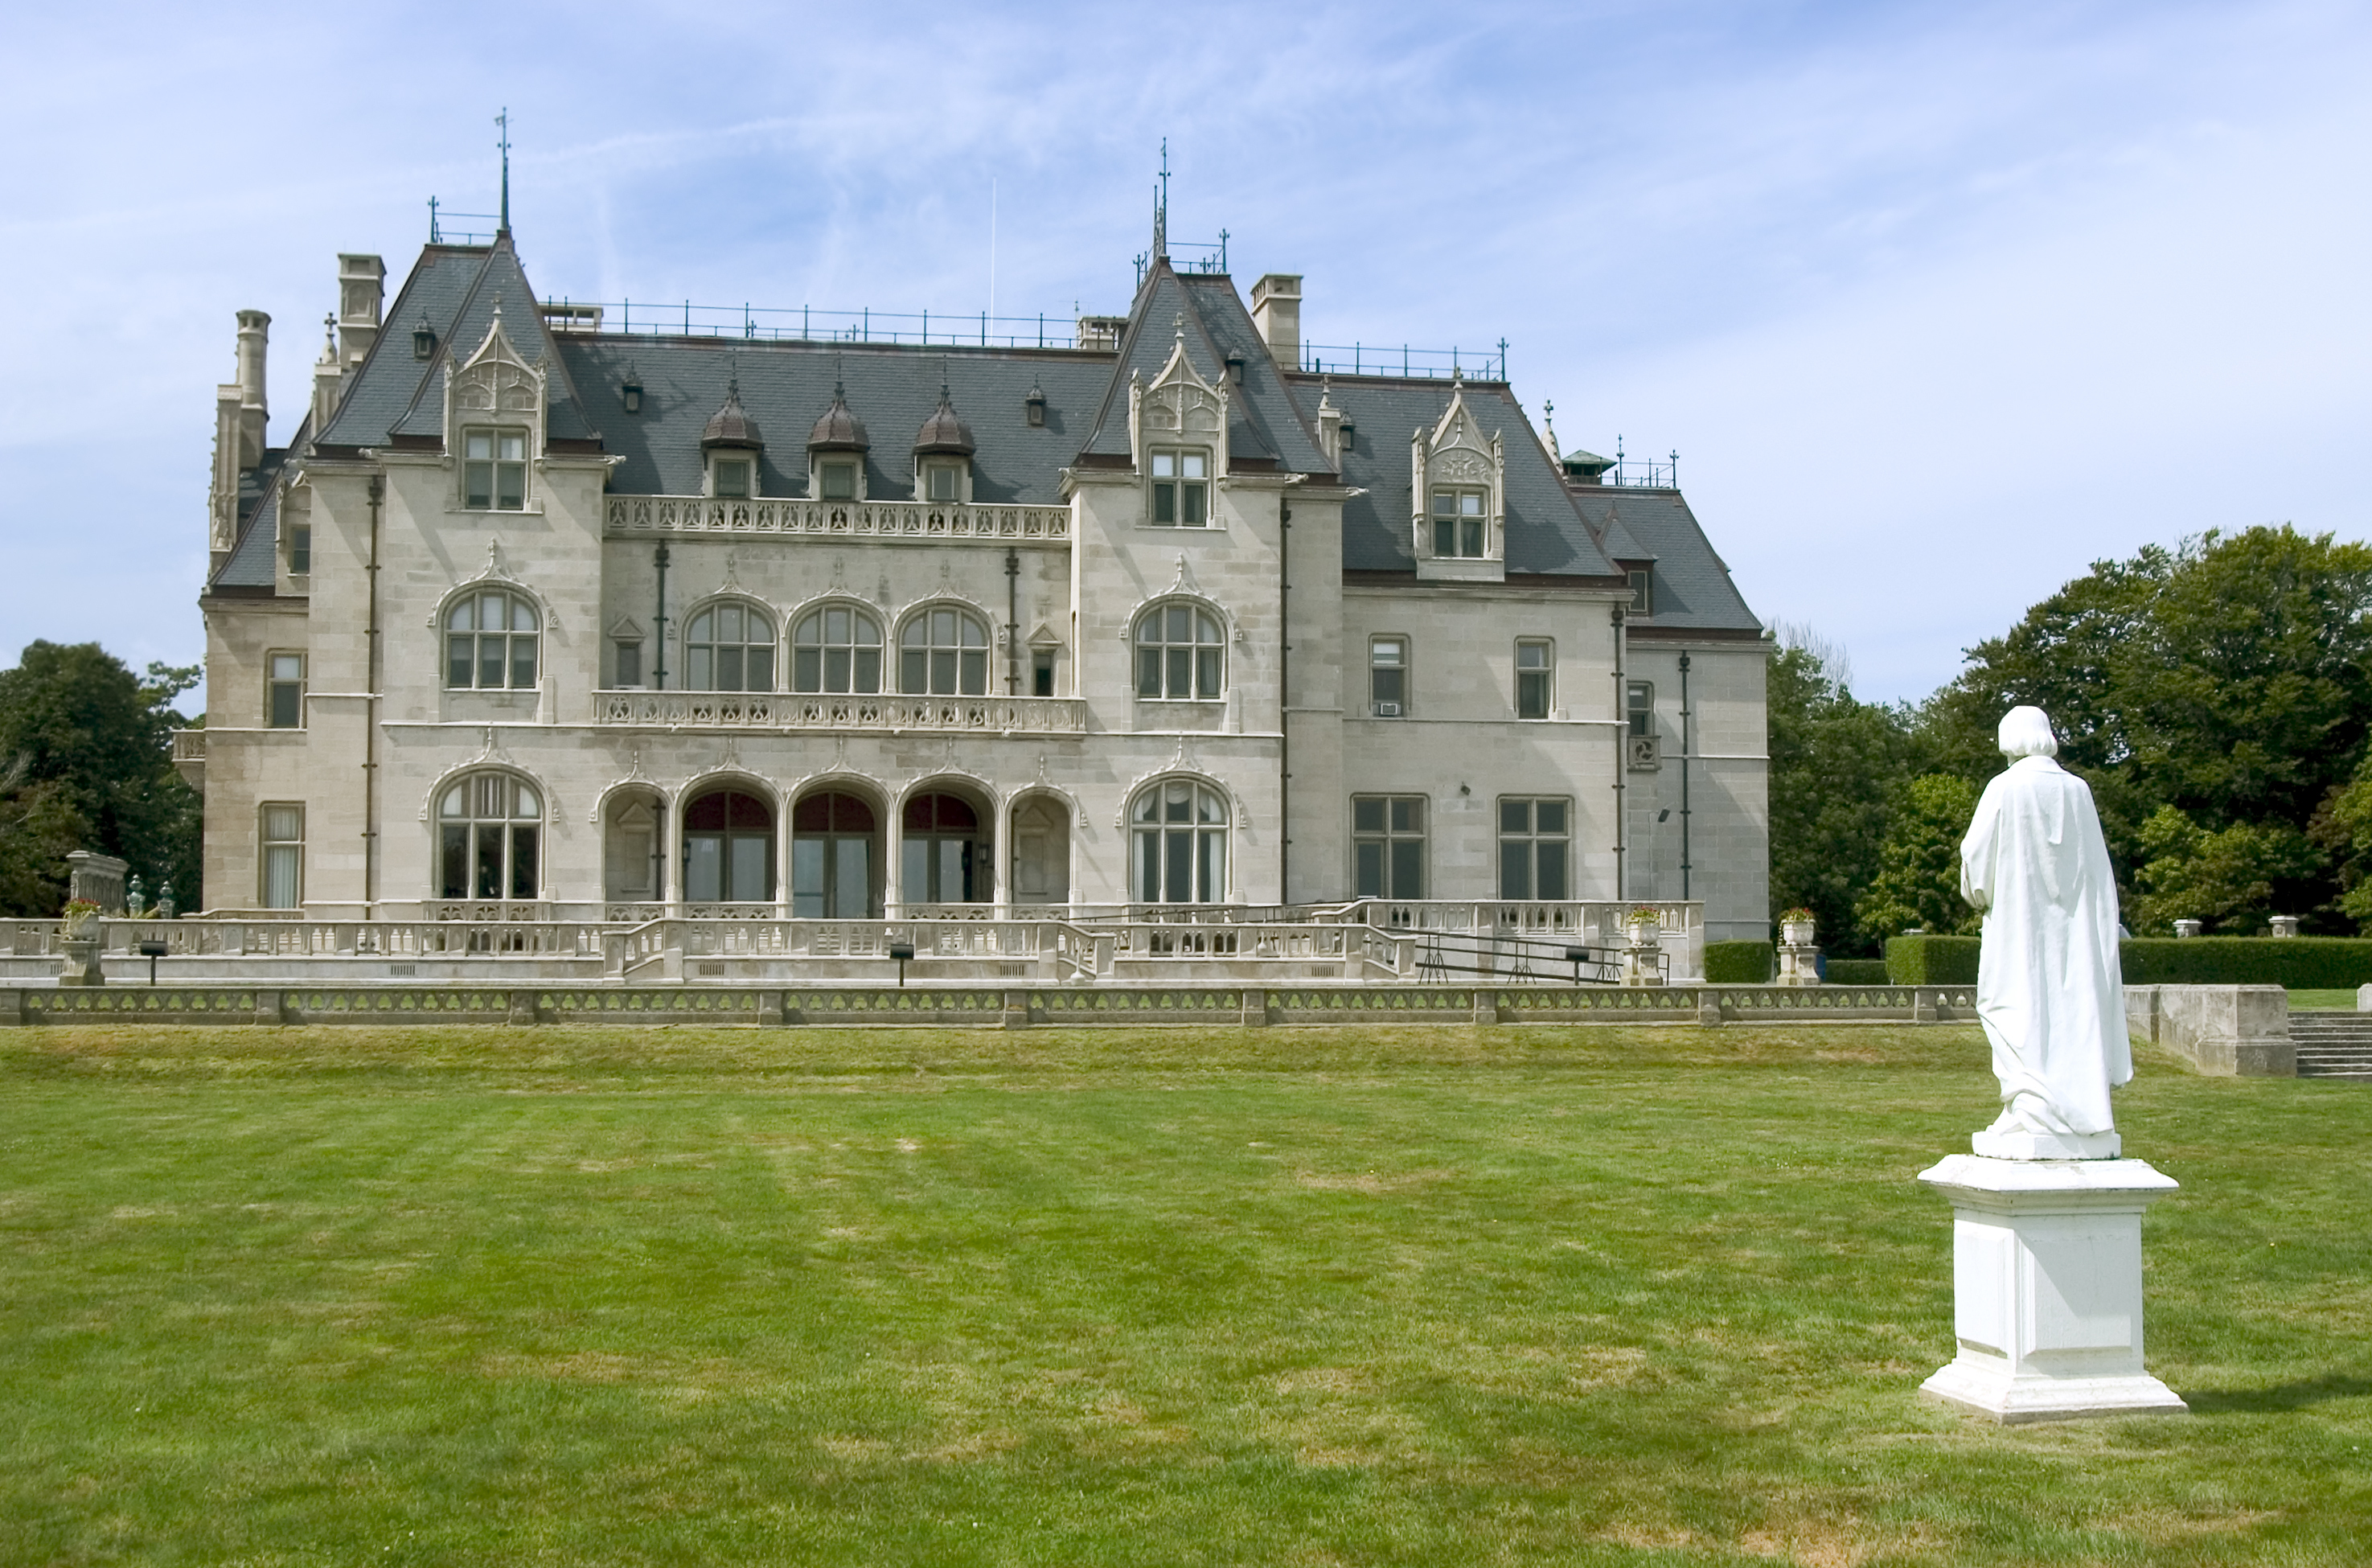 Rhode Island is famed for its many extavagant mansions